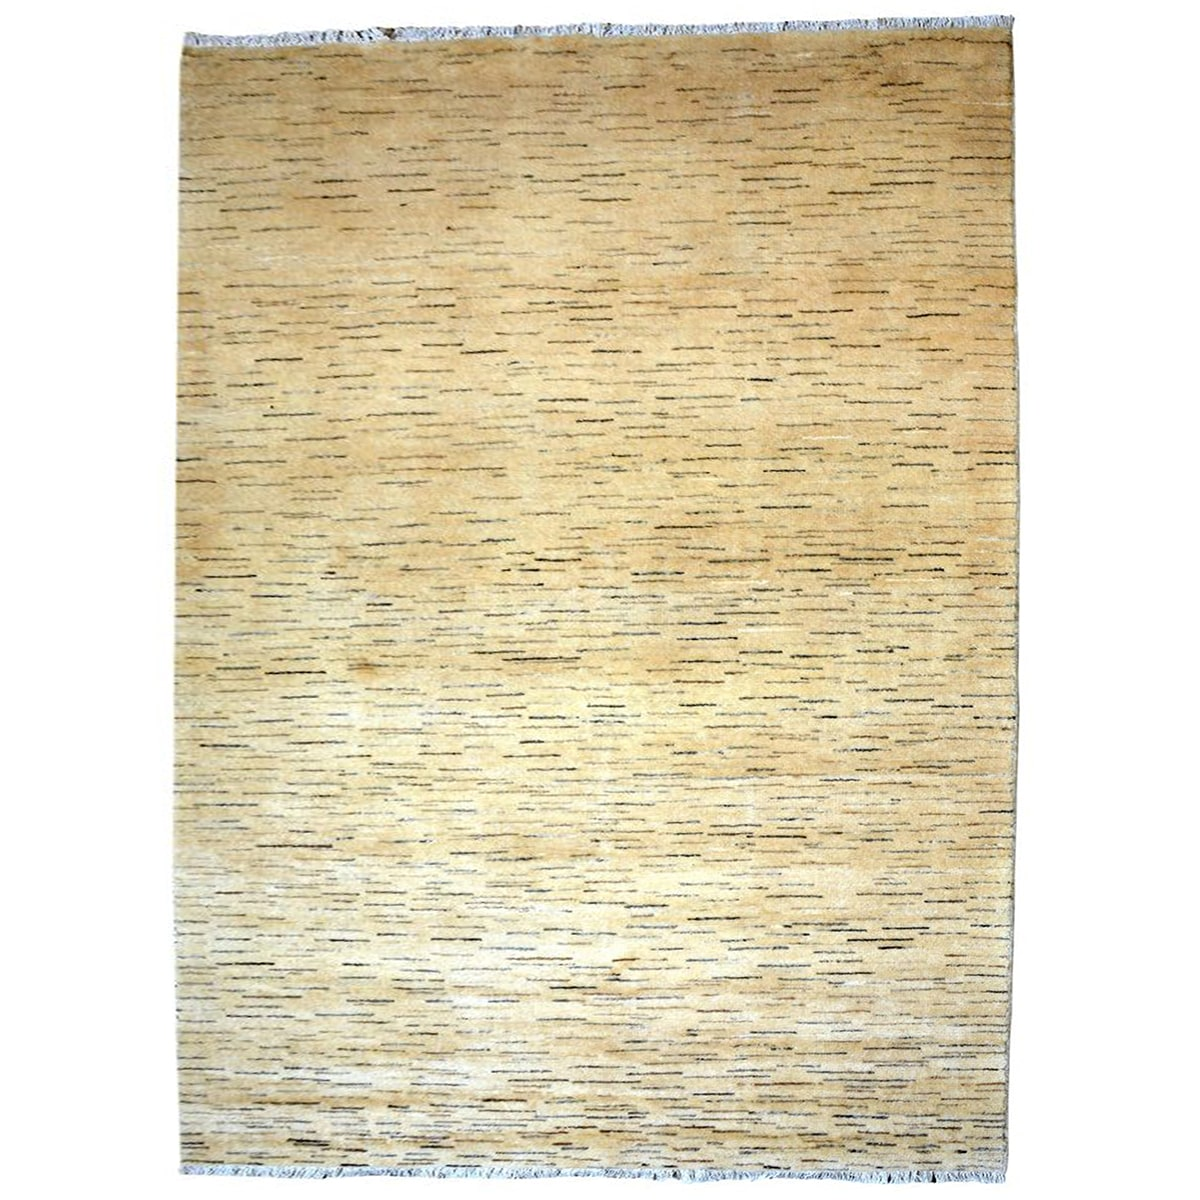 yellow Wool rug